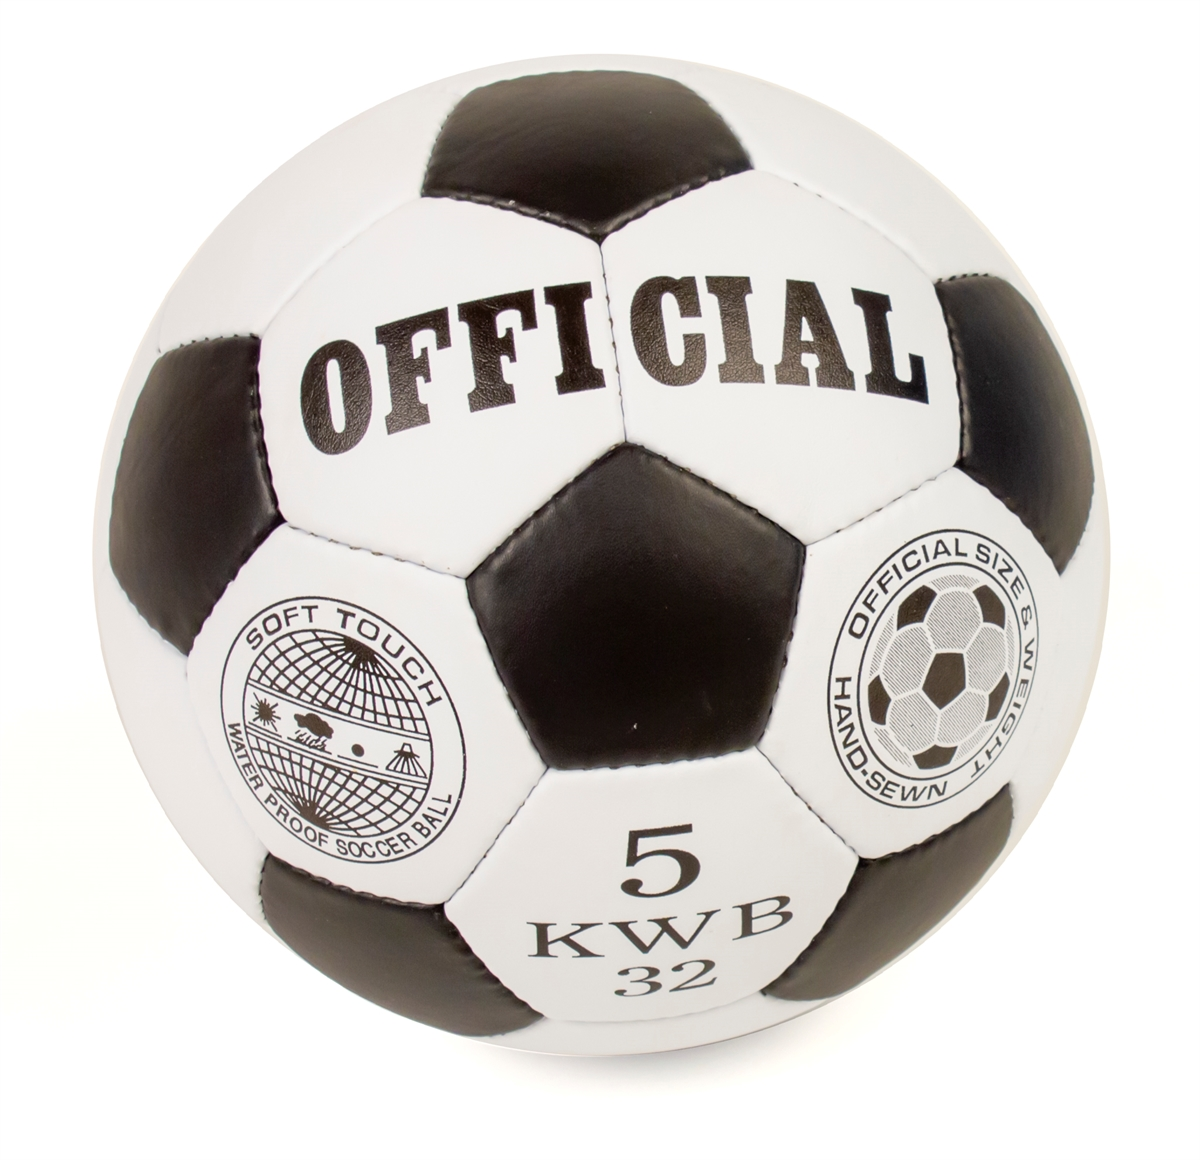 My Hood - Football Official Size 5 (302015)